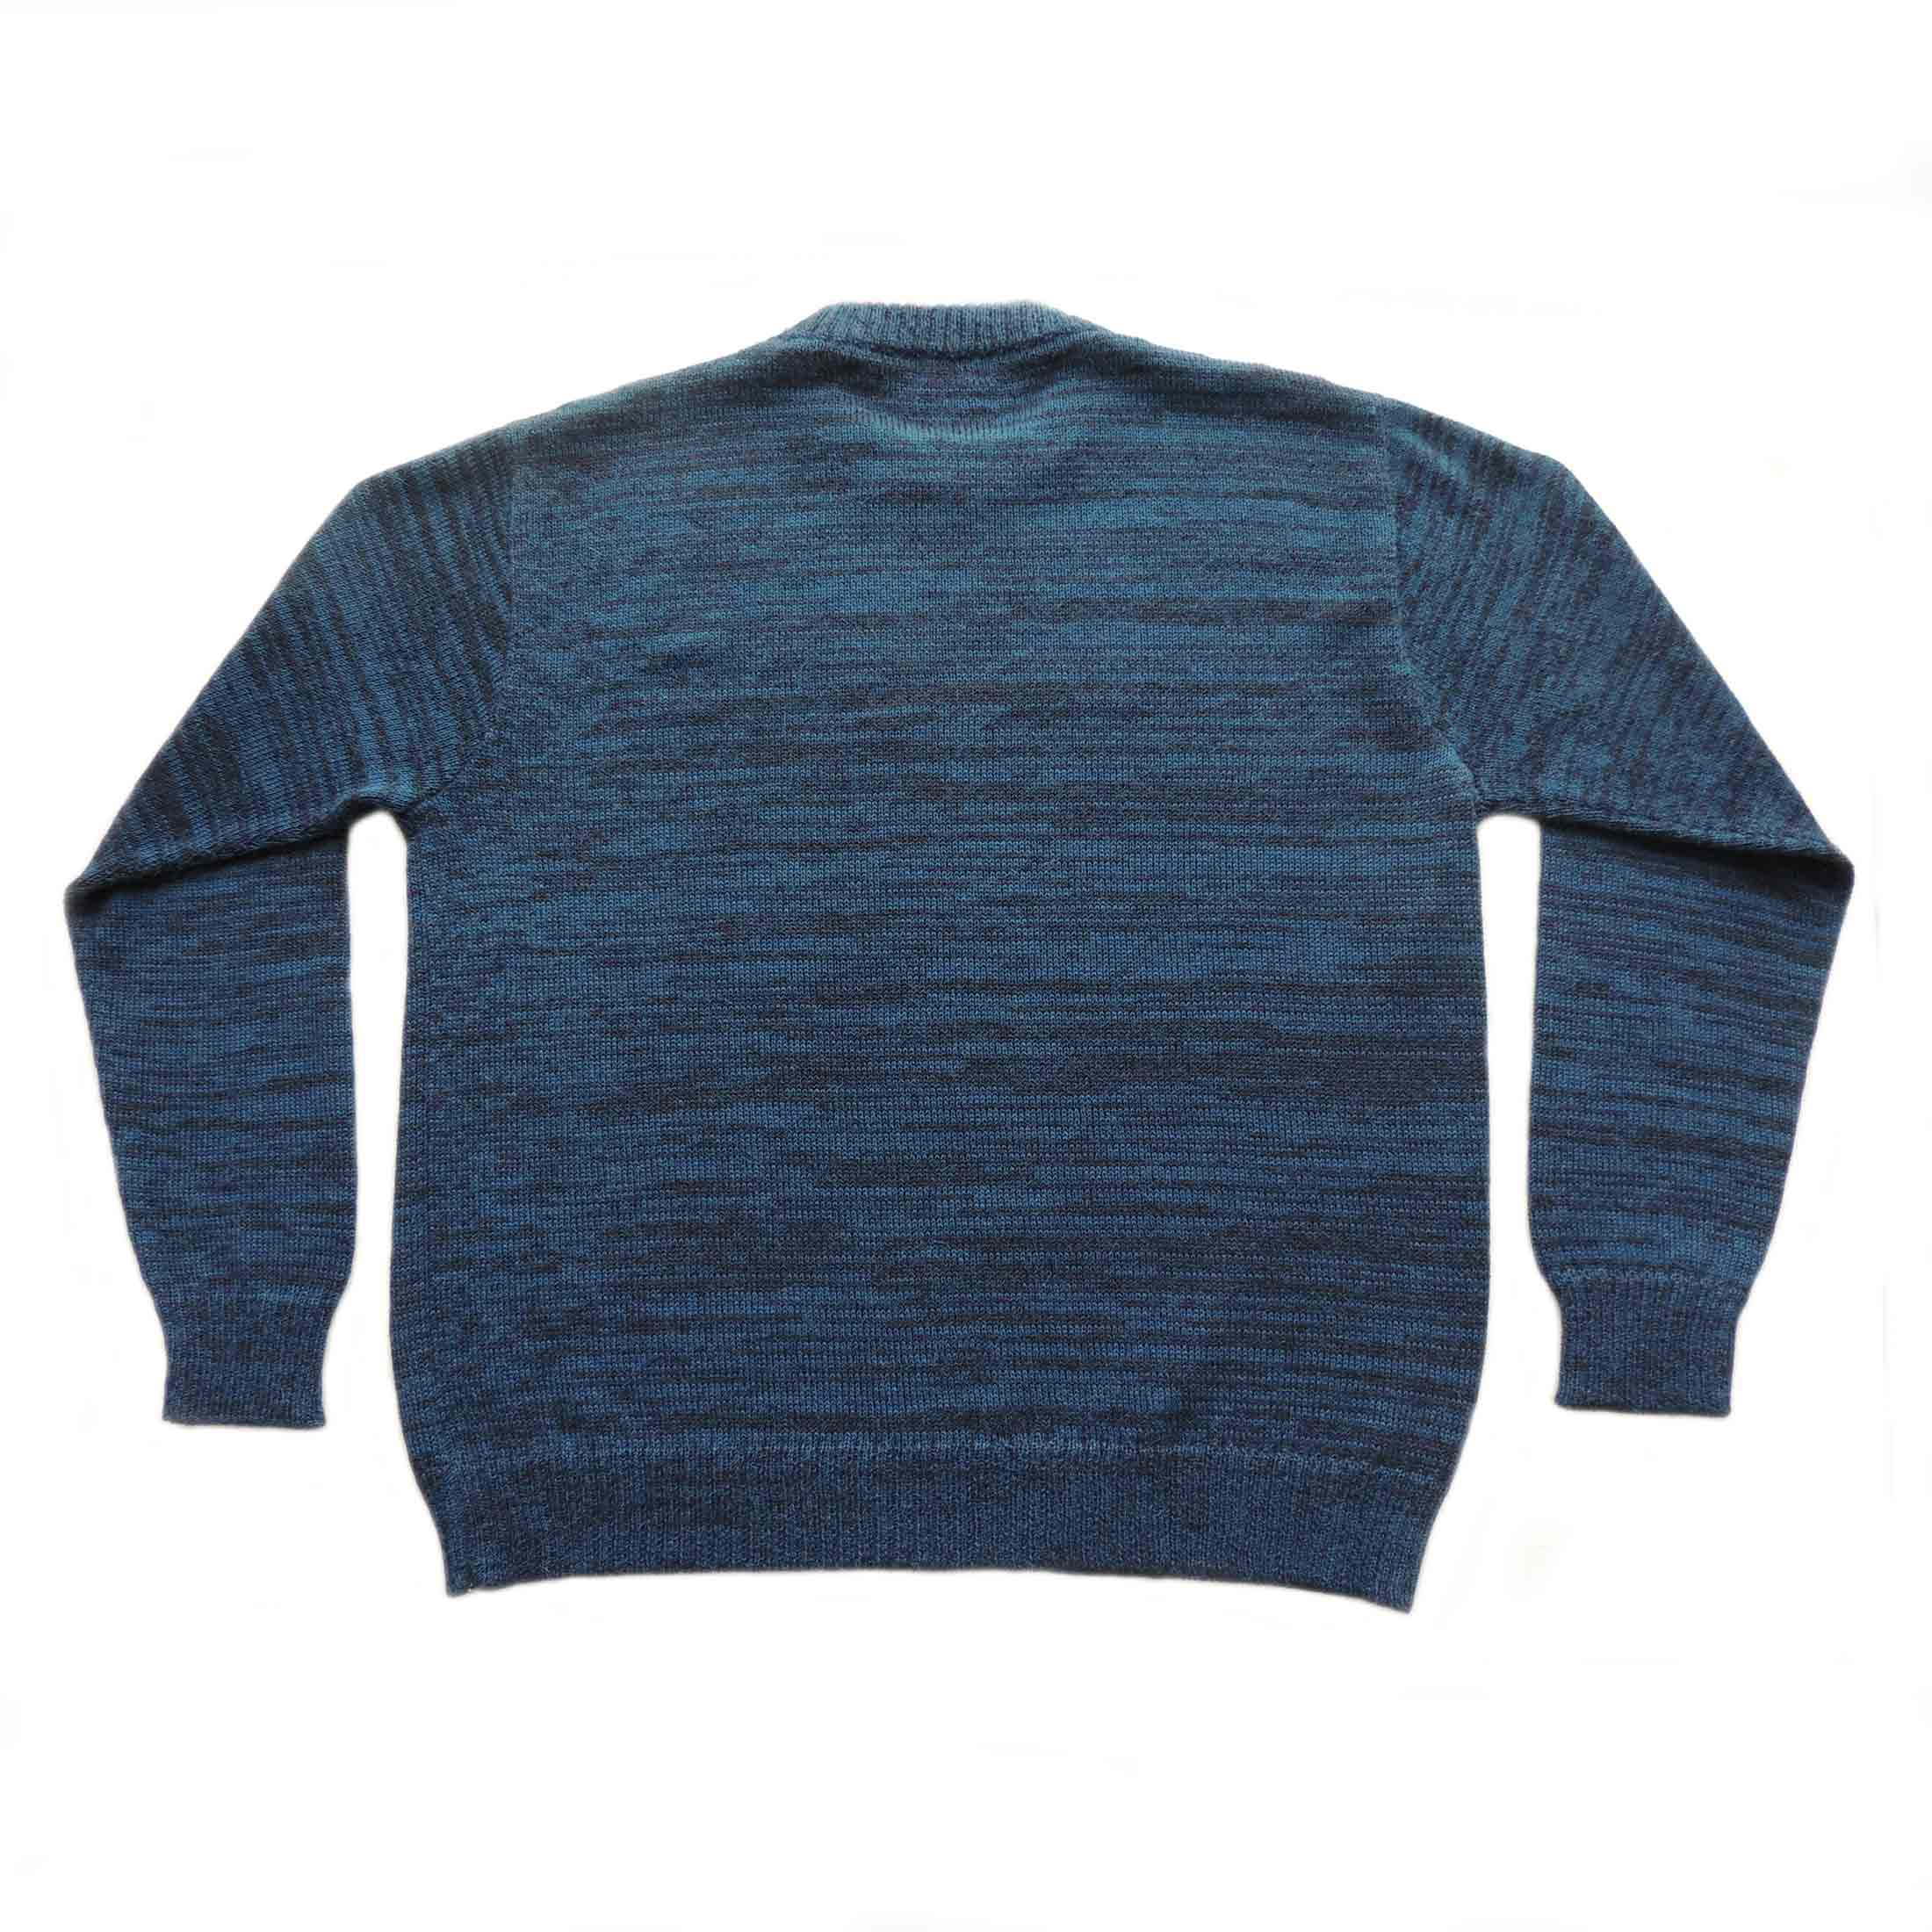 PopsFL knitwear wholesale Men sweater kintted in a melange 2 colors with crew neck, 100% alpaca.